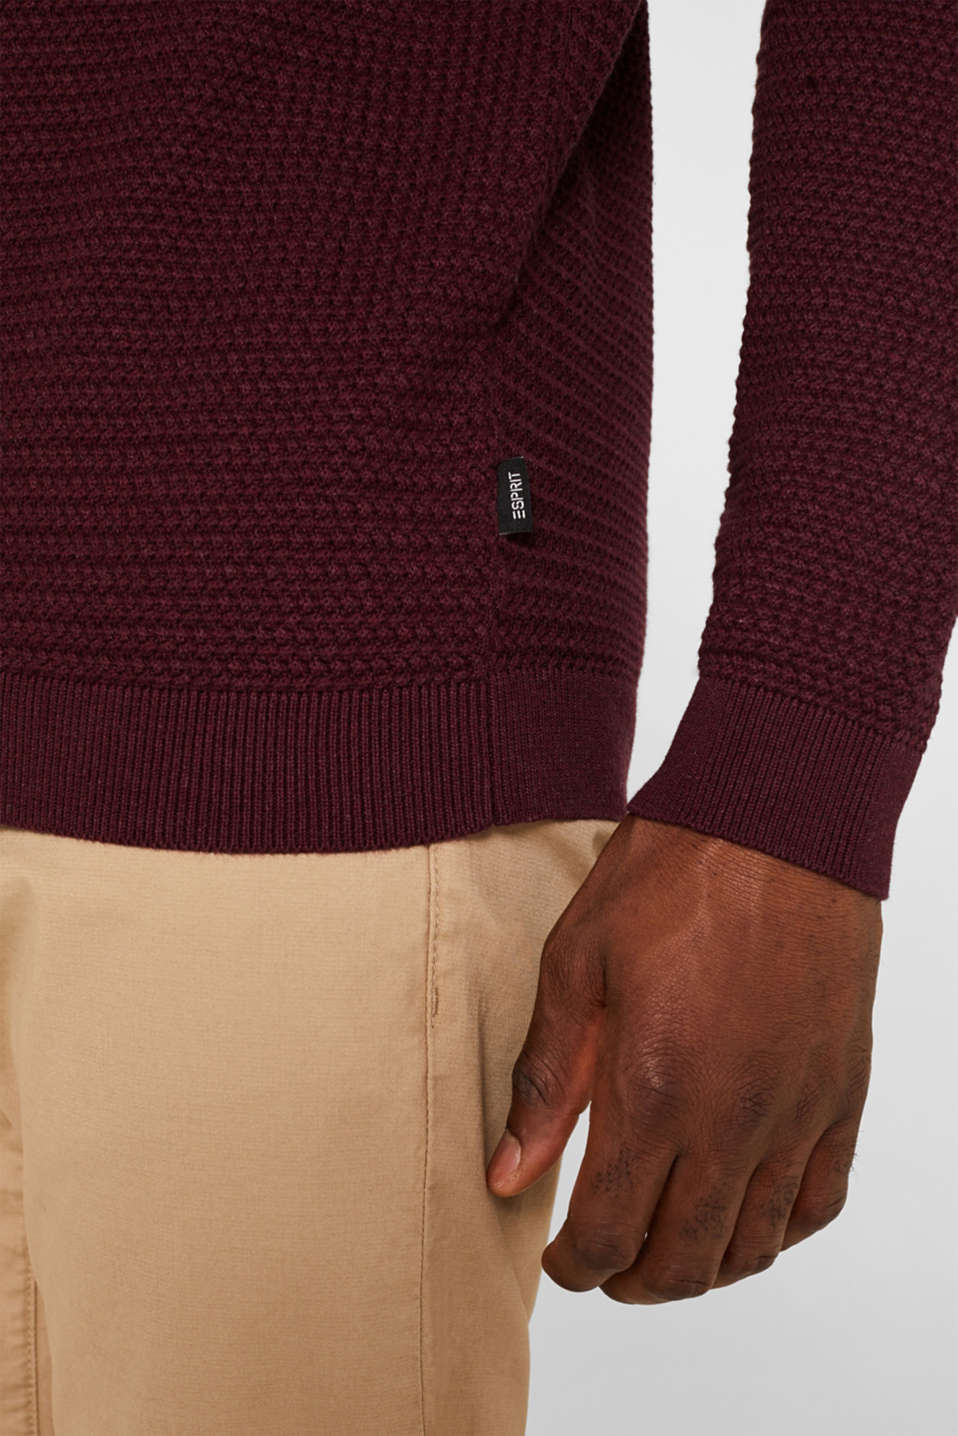 Textured jumper made of 100% cotton, BORDEAUX RED 5, detail image number 2